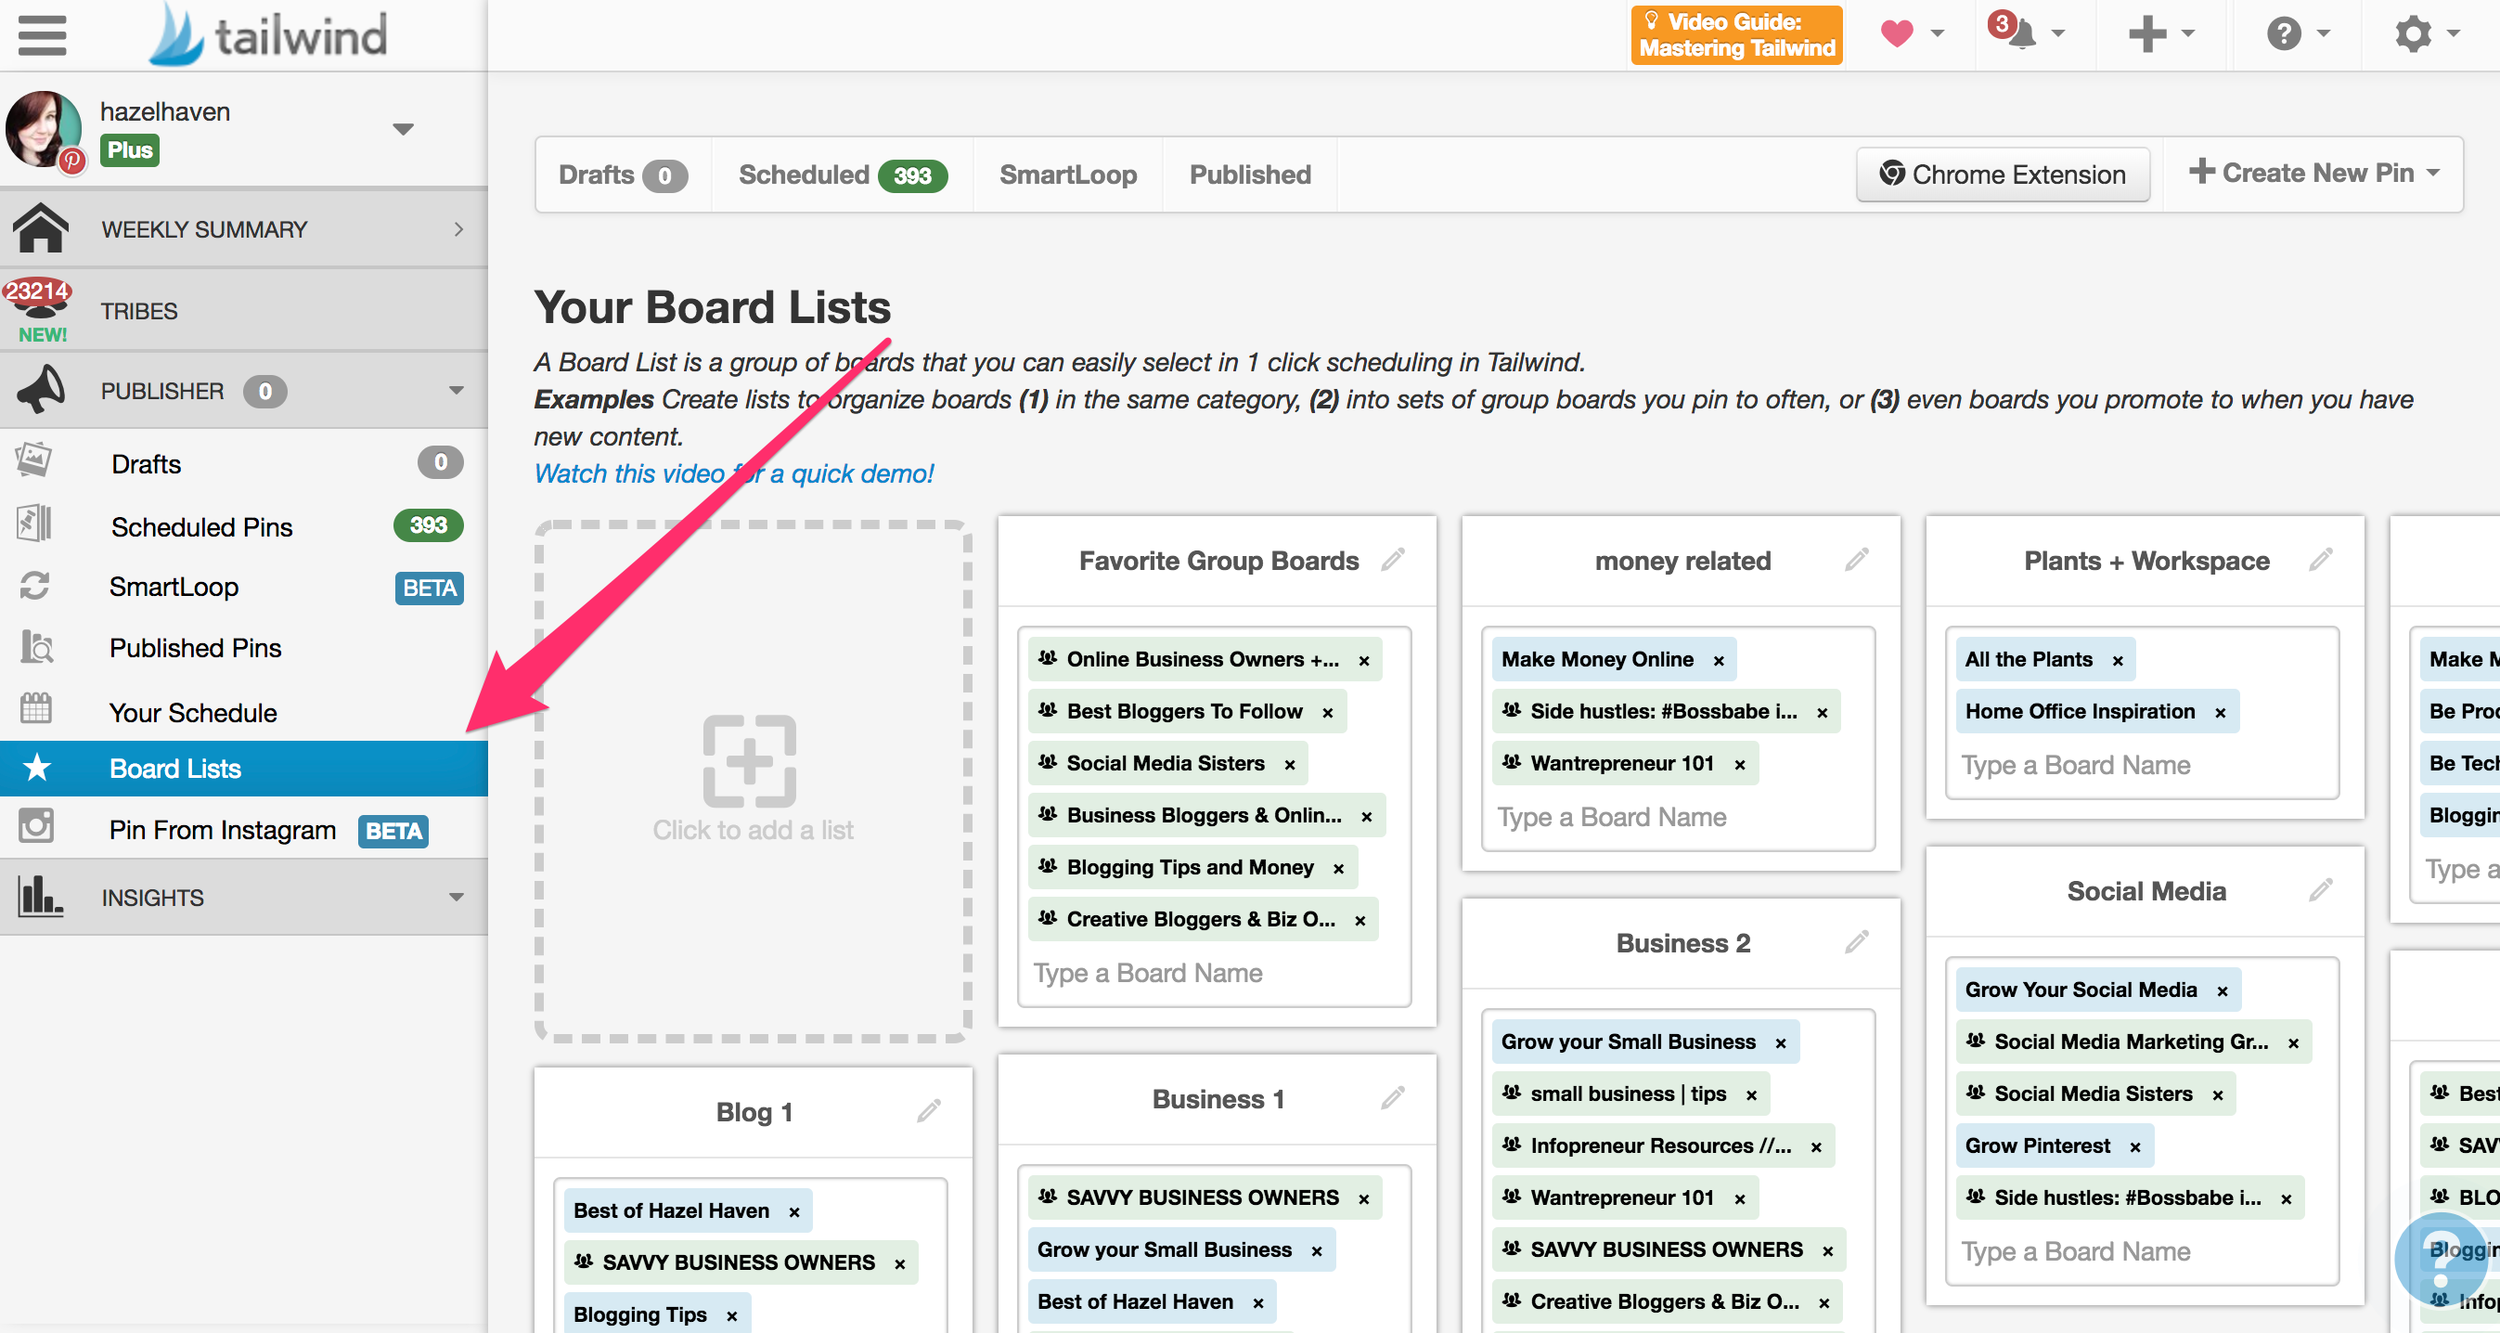 How to Use Board Lists with the Tailwind App for Pinterest #tailwind #blogging #onlinebusiness #pinterest #pinterestmarketing #tailwindapp